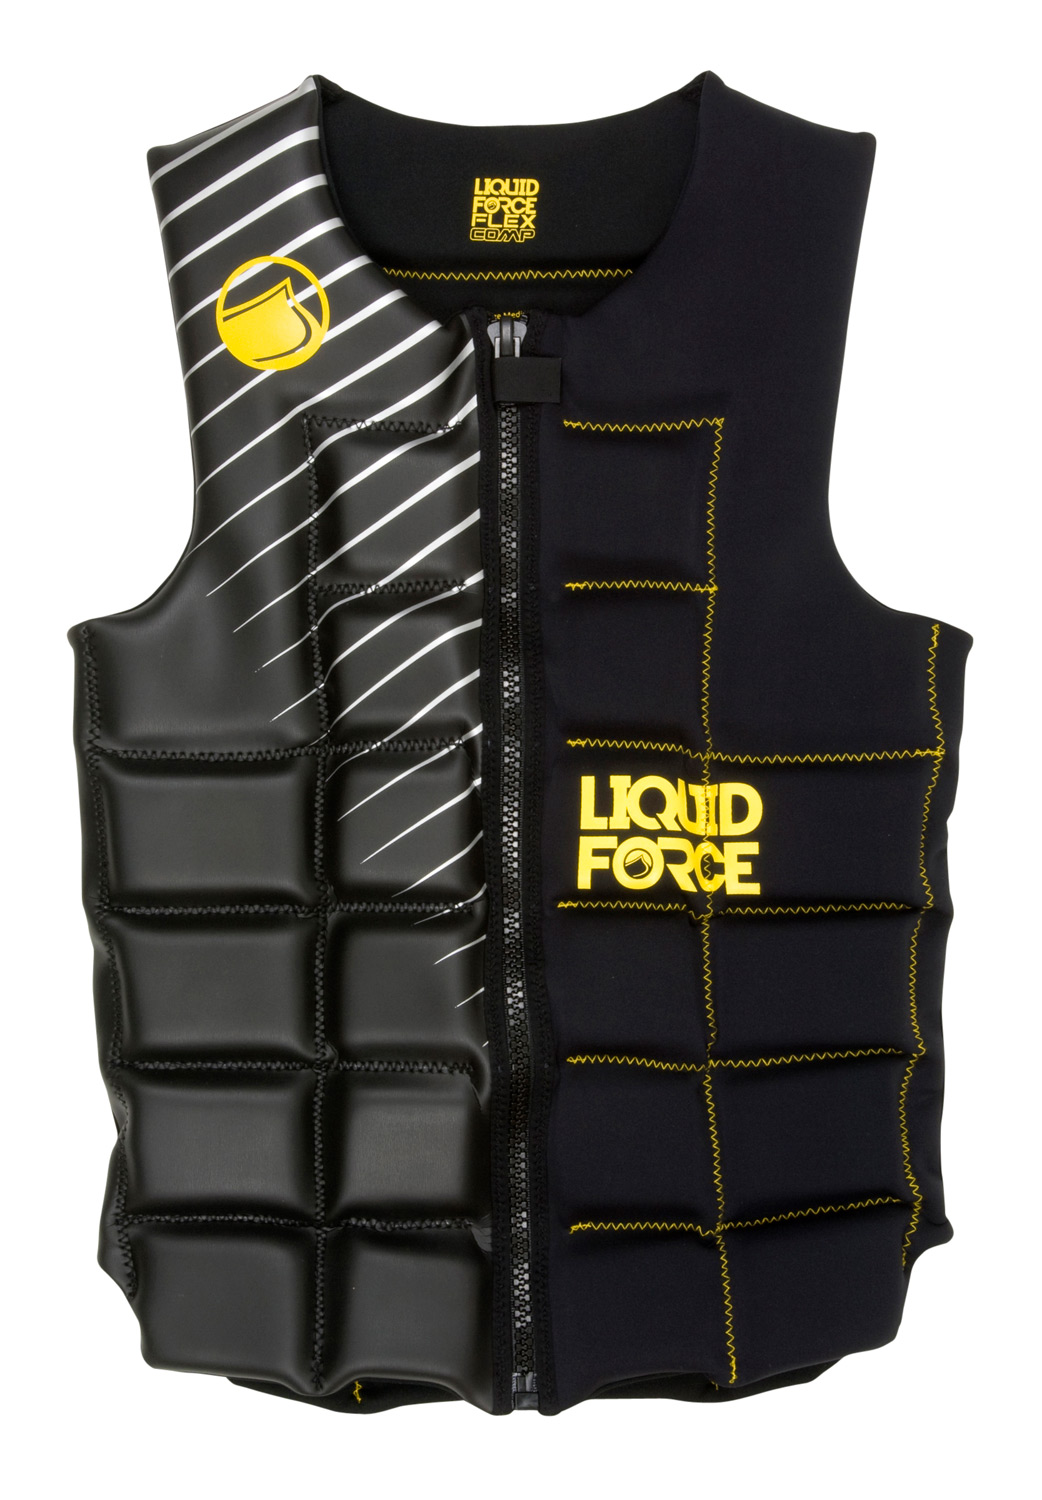 Wake The Liquid Force team was looking for comfortable, flexible vest that fit every one. The Flex Comp has all the flexibility of our pullover vests but ease of entry of a front zipper. Fully segmented design, wide neck and arm openings makes this the vest for every one in the boat. Get you size and rock out in the Flex.Key Features of the Liquid Force Flex Comp Wakeboard Vest: Super clean design: Increased forward flex and comfort... no buckles to get in the way Full Front Zip: The full zipper makes it easier to get into and out of. Segmented Foam Panels: Designed to fit you perfectly Super-Stretch Neoprene: Flex panels allow Vest: Extra space and comfort for added mobility Strapless design: Clean and simple with nothing to get in your way on handle passes. - $111.95